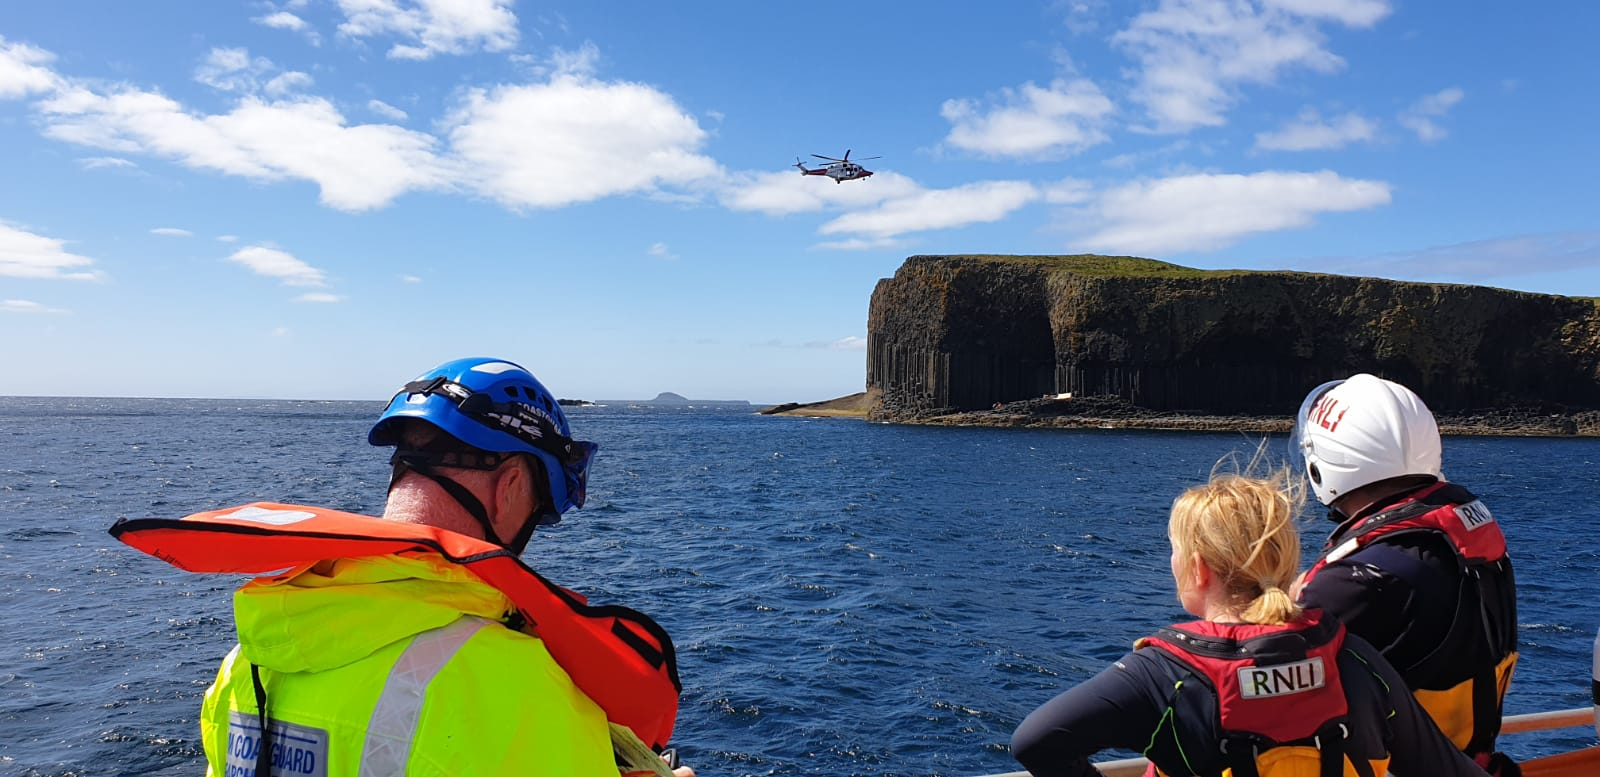 Rescue 151 preparing to winch casualty from Staffa